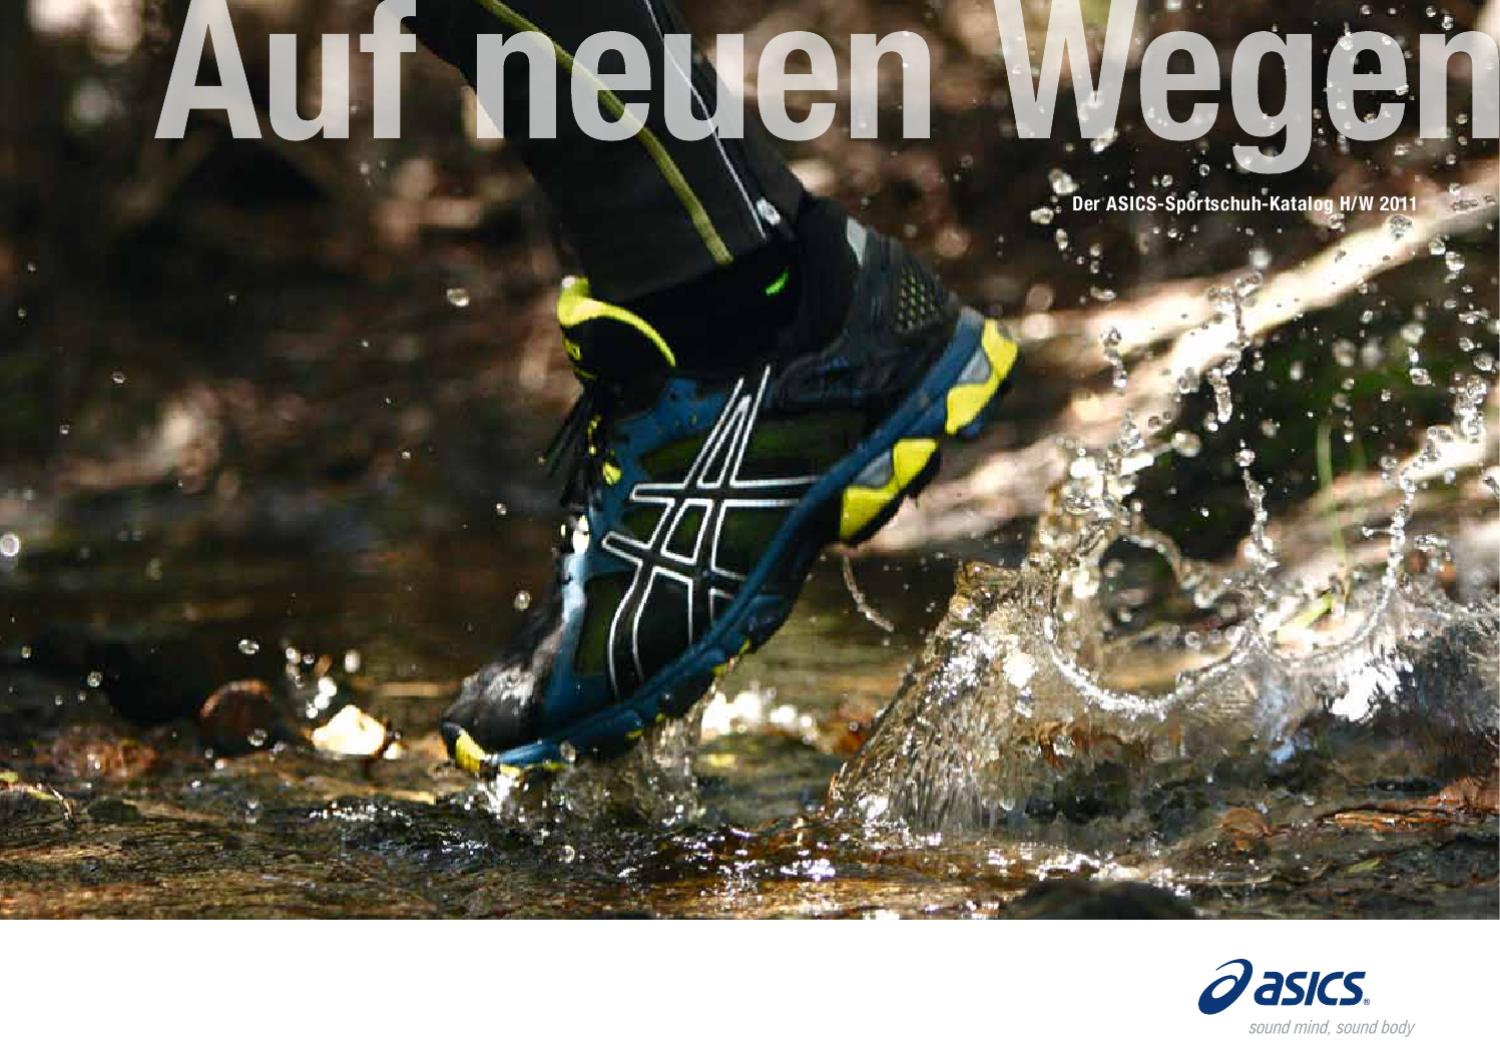 ASICS Workbook Schuhe HW11 by montana sport ag issuu